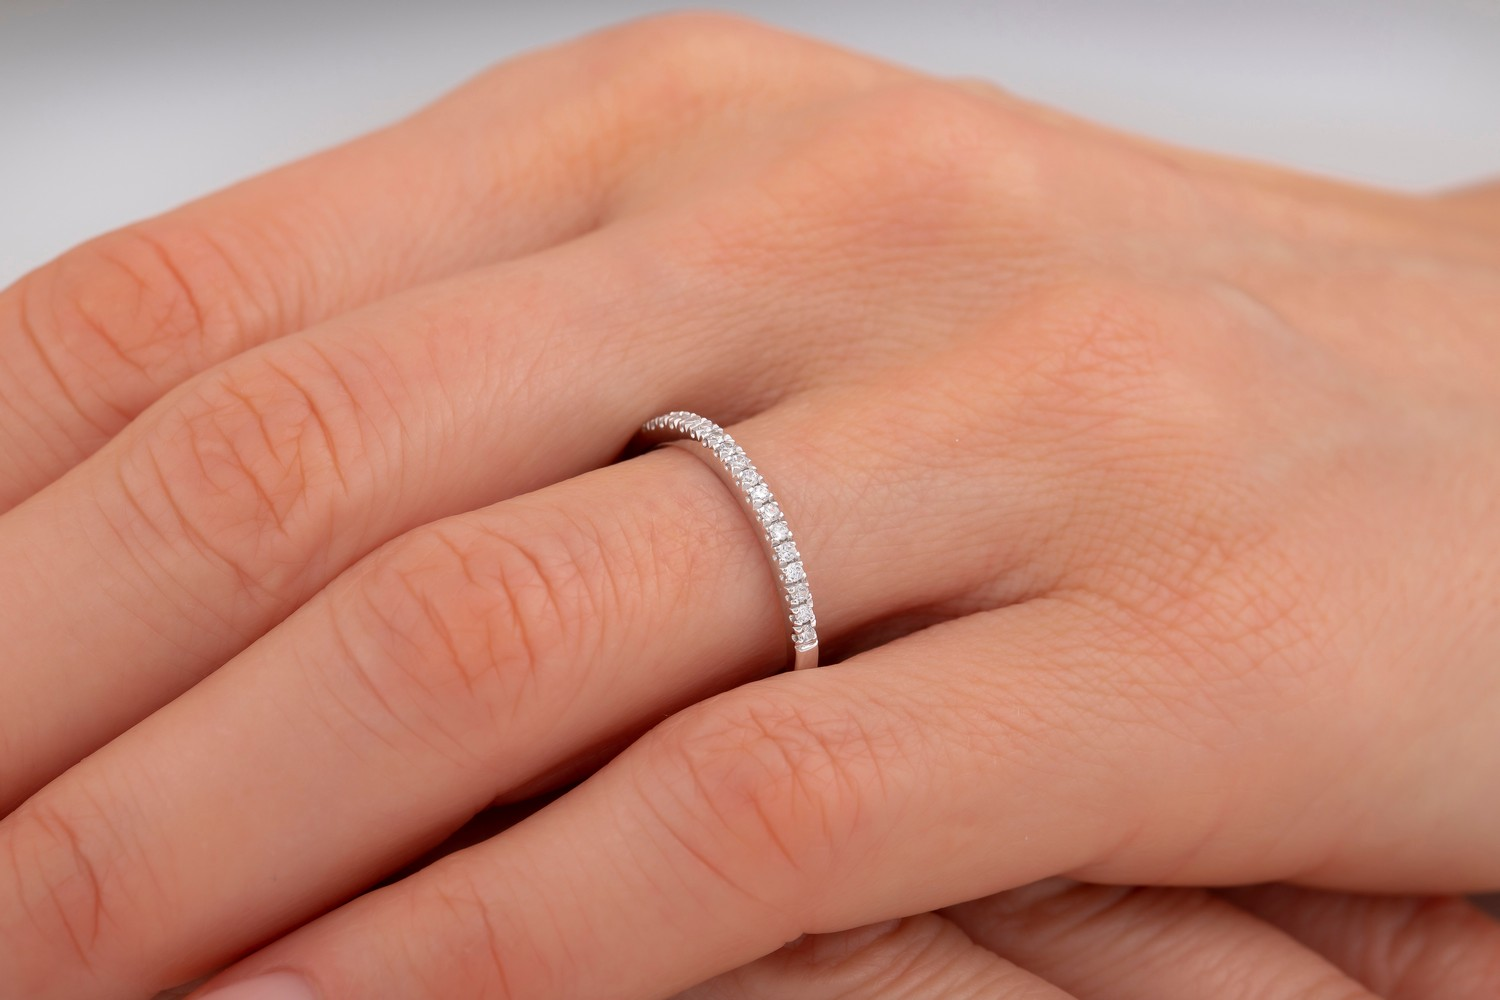 Diamond Set Eternity/Wedding Ring for Women in Palladium with 24 Round Brilliant Cut Diamonds in a Claw Setting, Width 1.6mm-img1